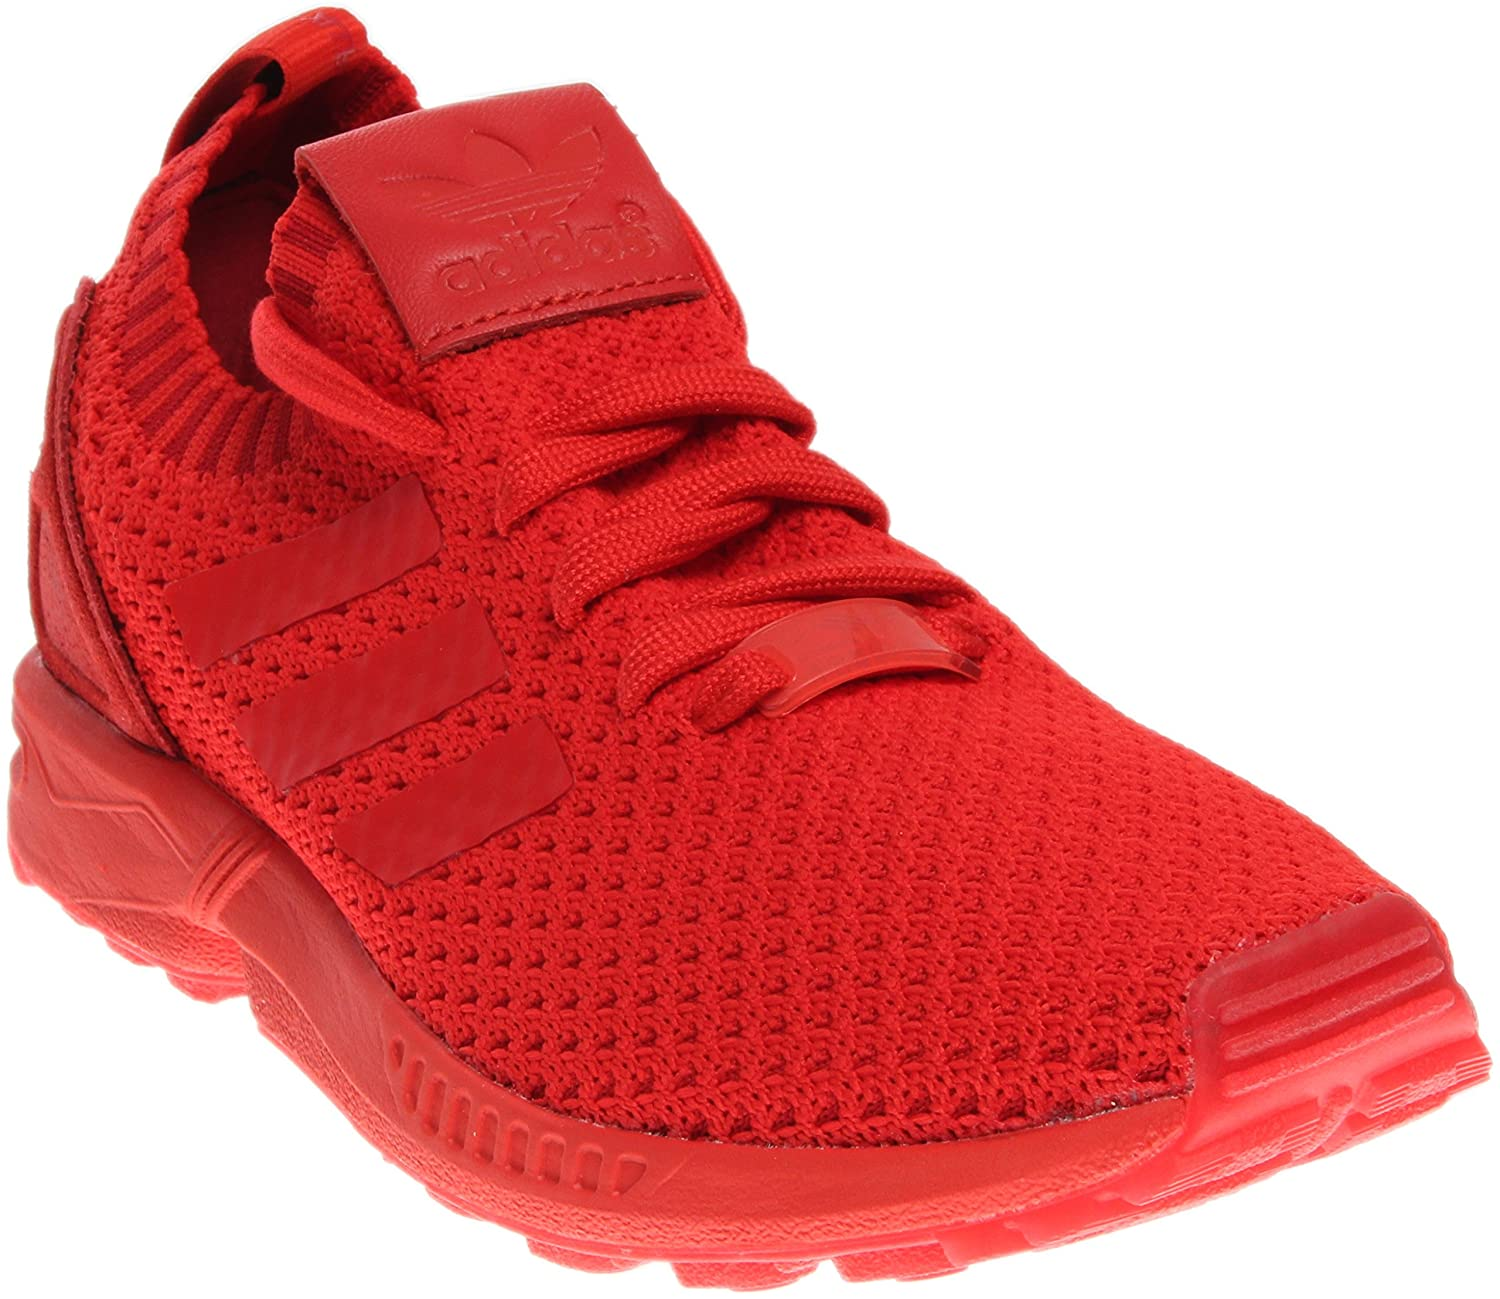 adidas Men's Zx Flux Primeknit Red/Ankle-High Cross Trainer Shoe - 10.5M